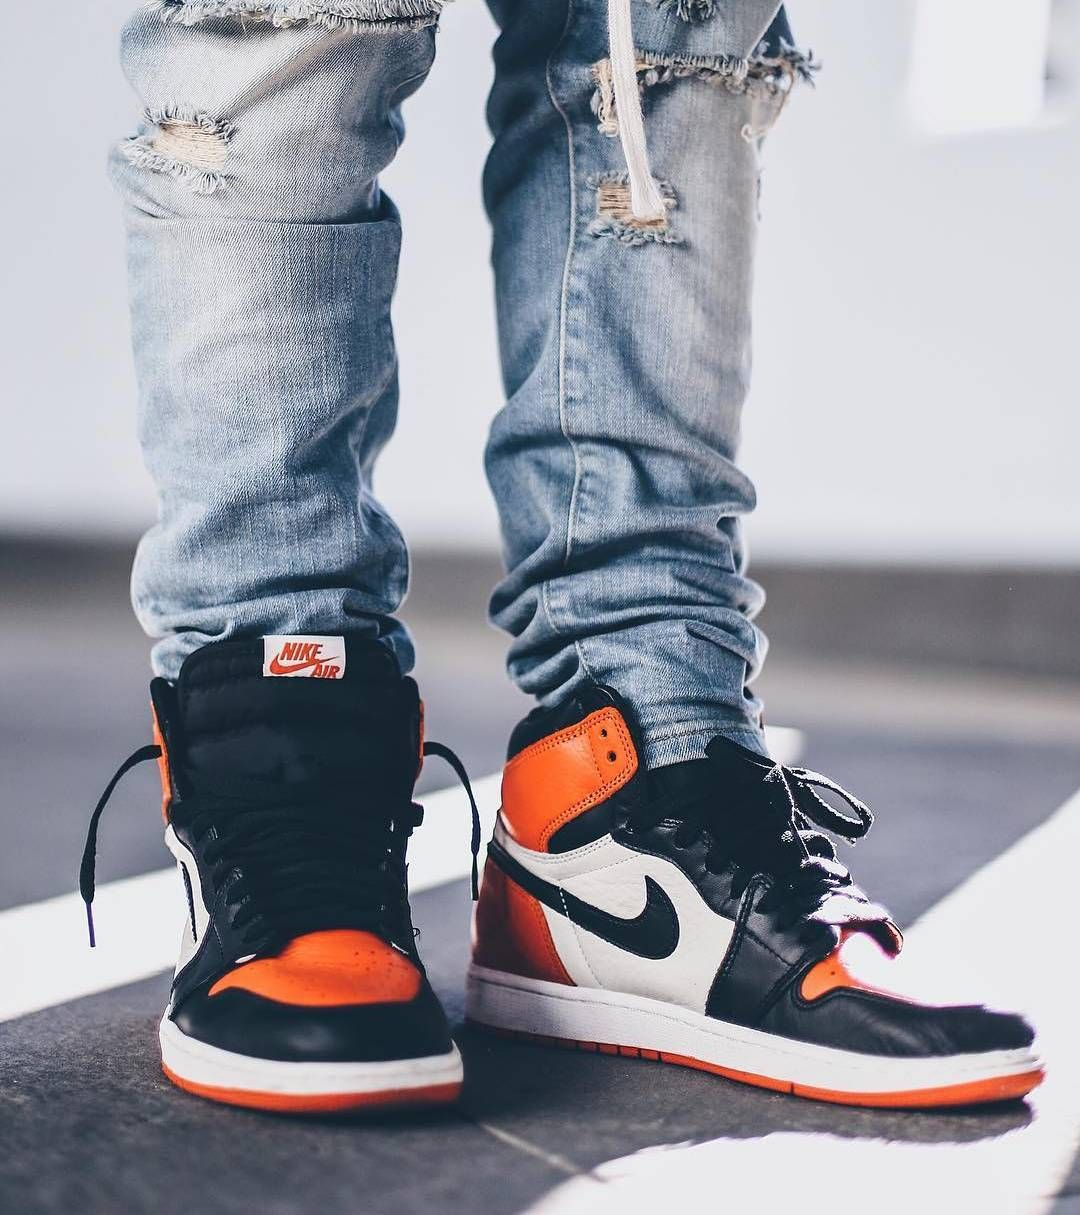 Shattered Backboard 1 s  7f291900b